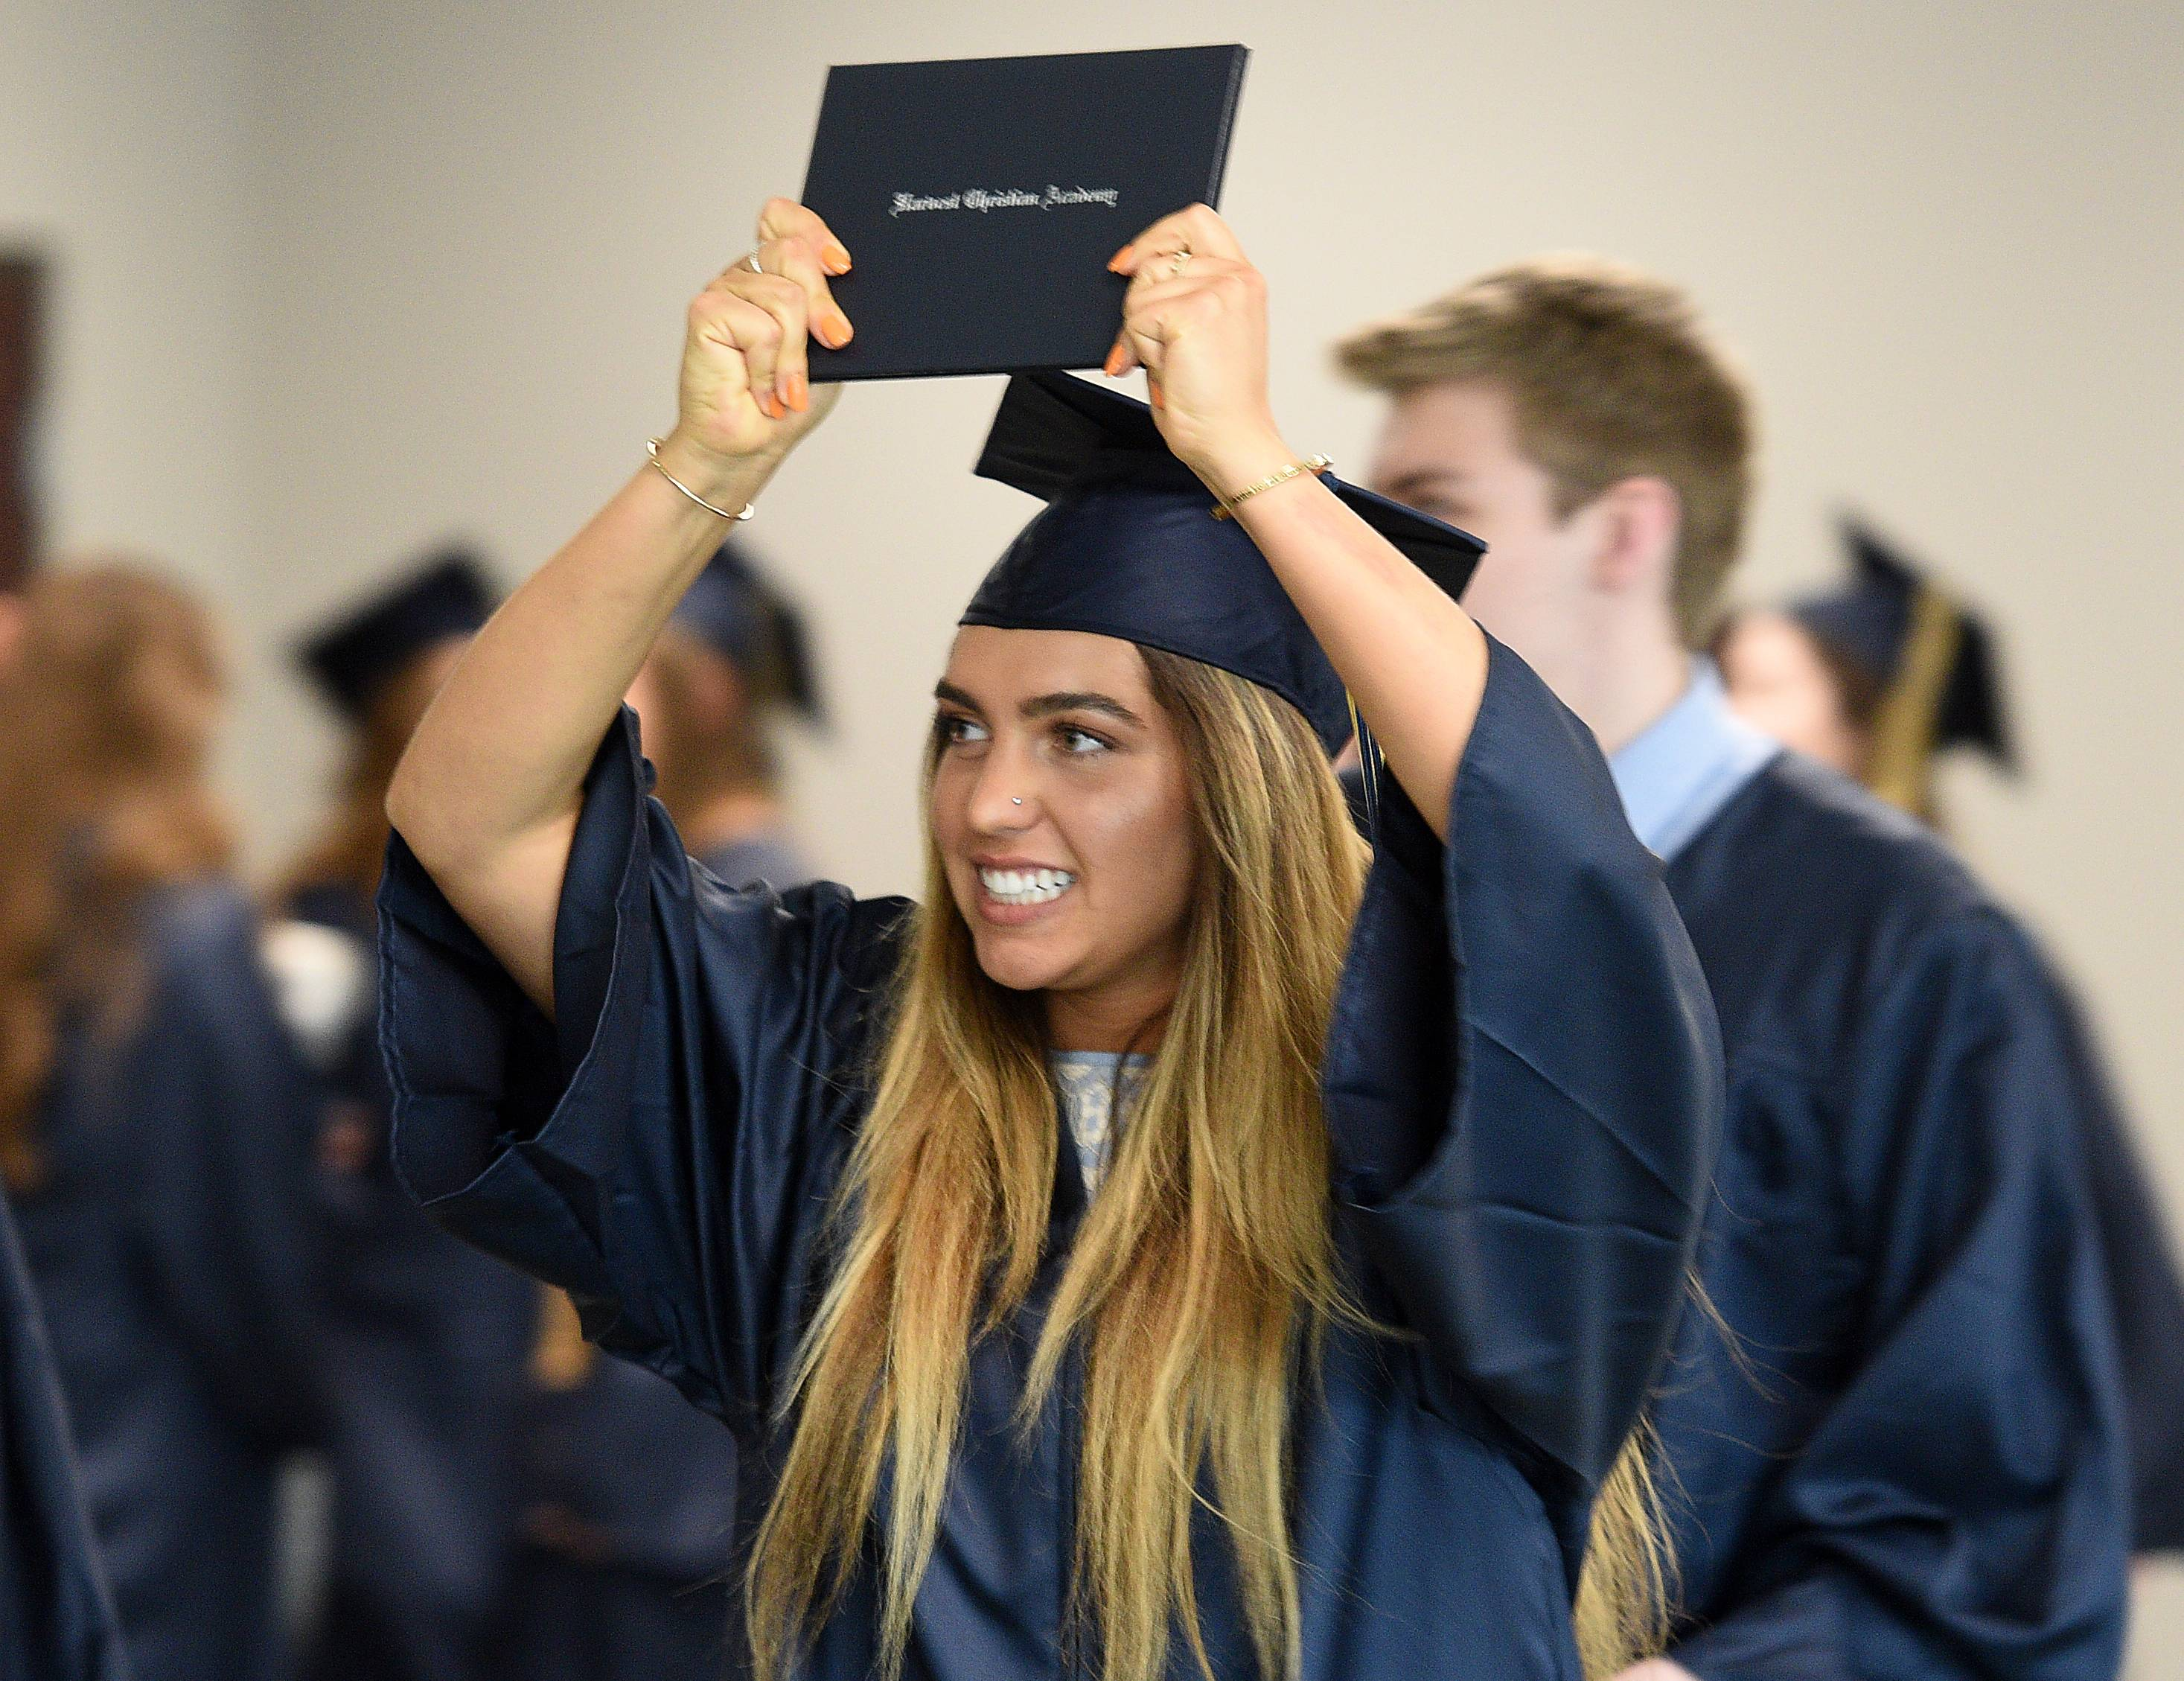 Candis Kaplan emerges victorious with her diploma held high after the Harvest Christian Academy graduation ceremony on Sunday at the school in Elgin.